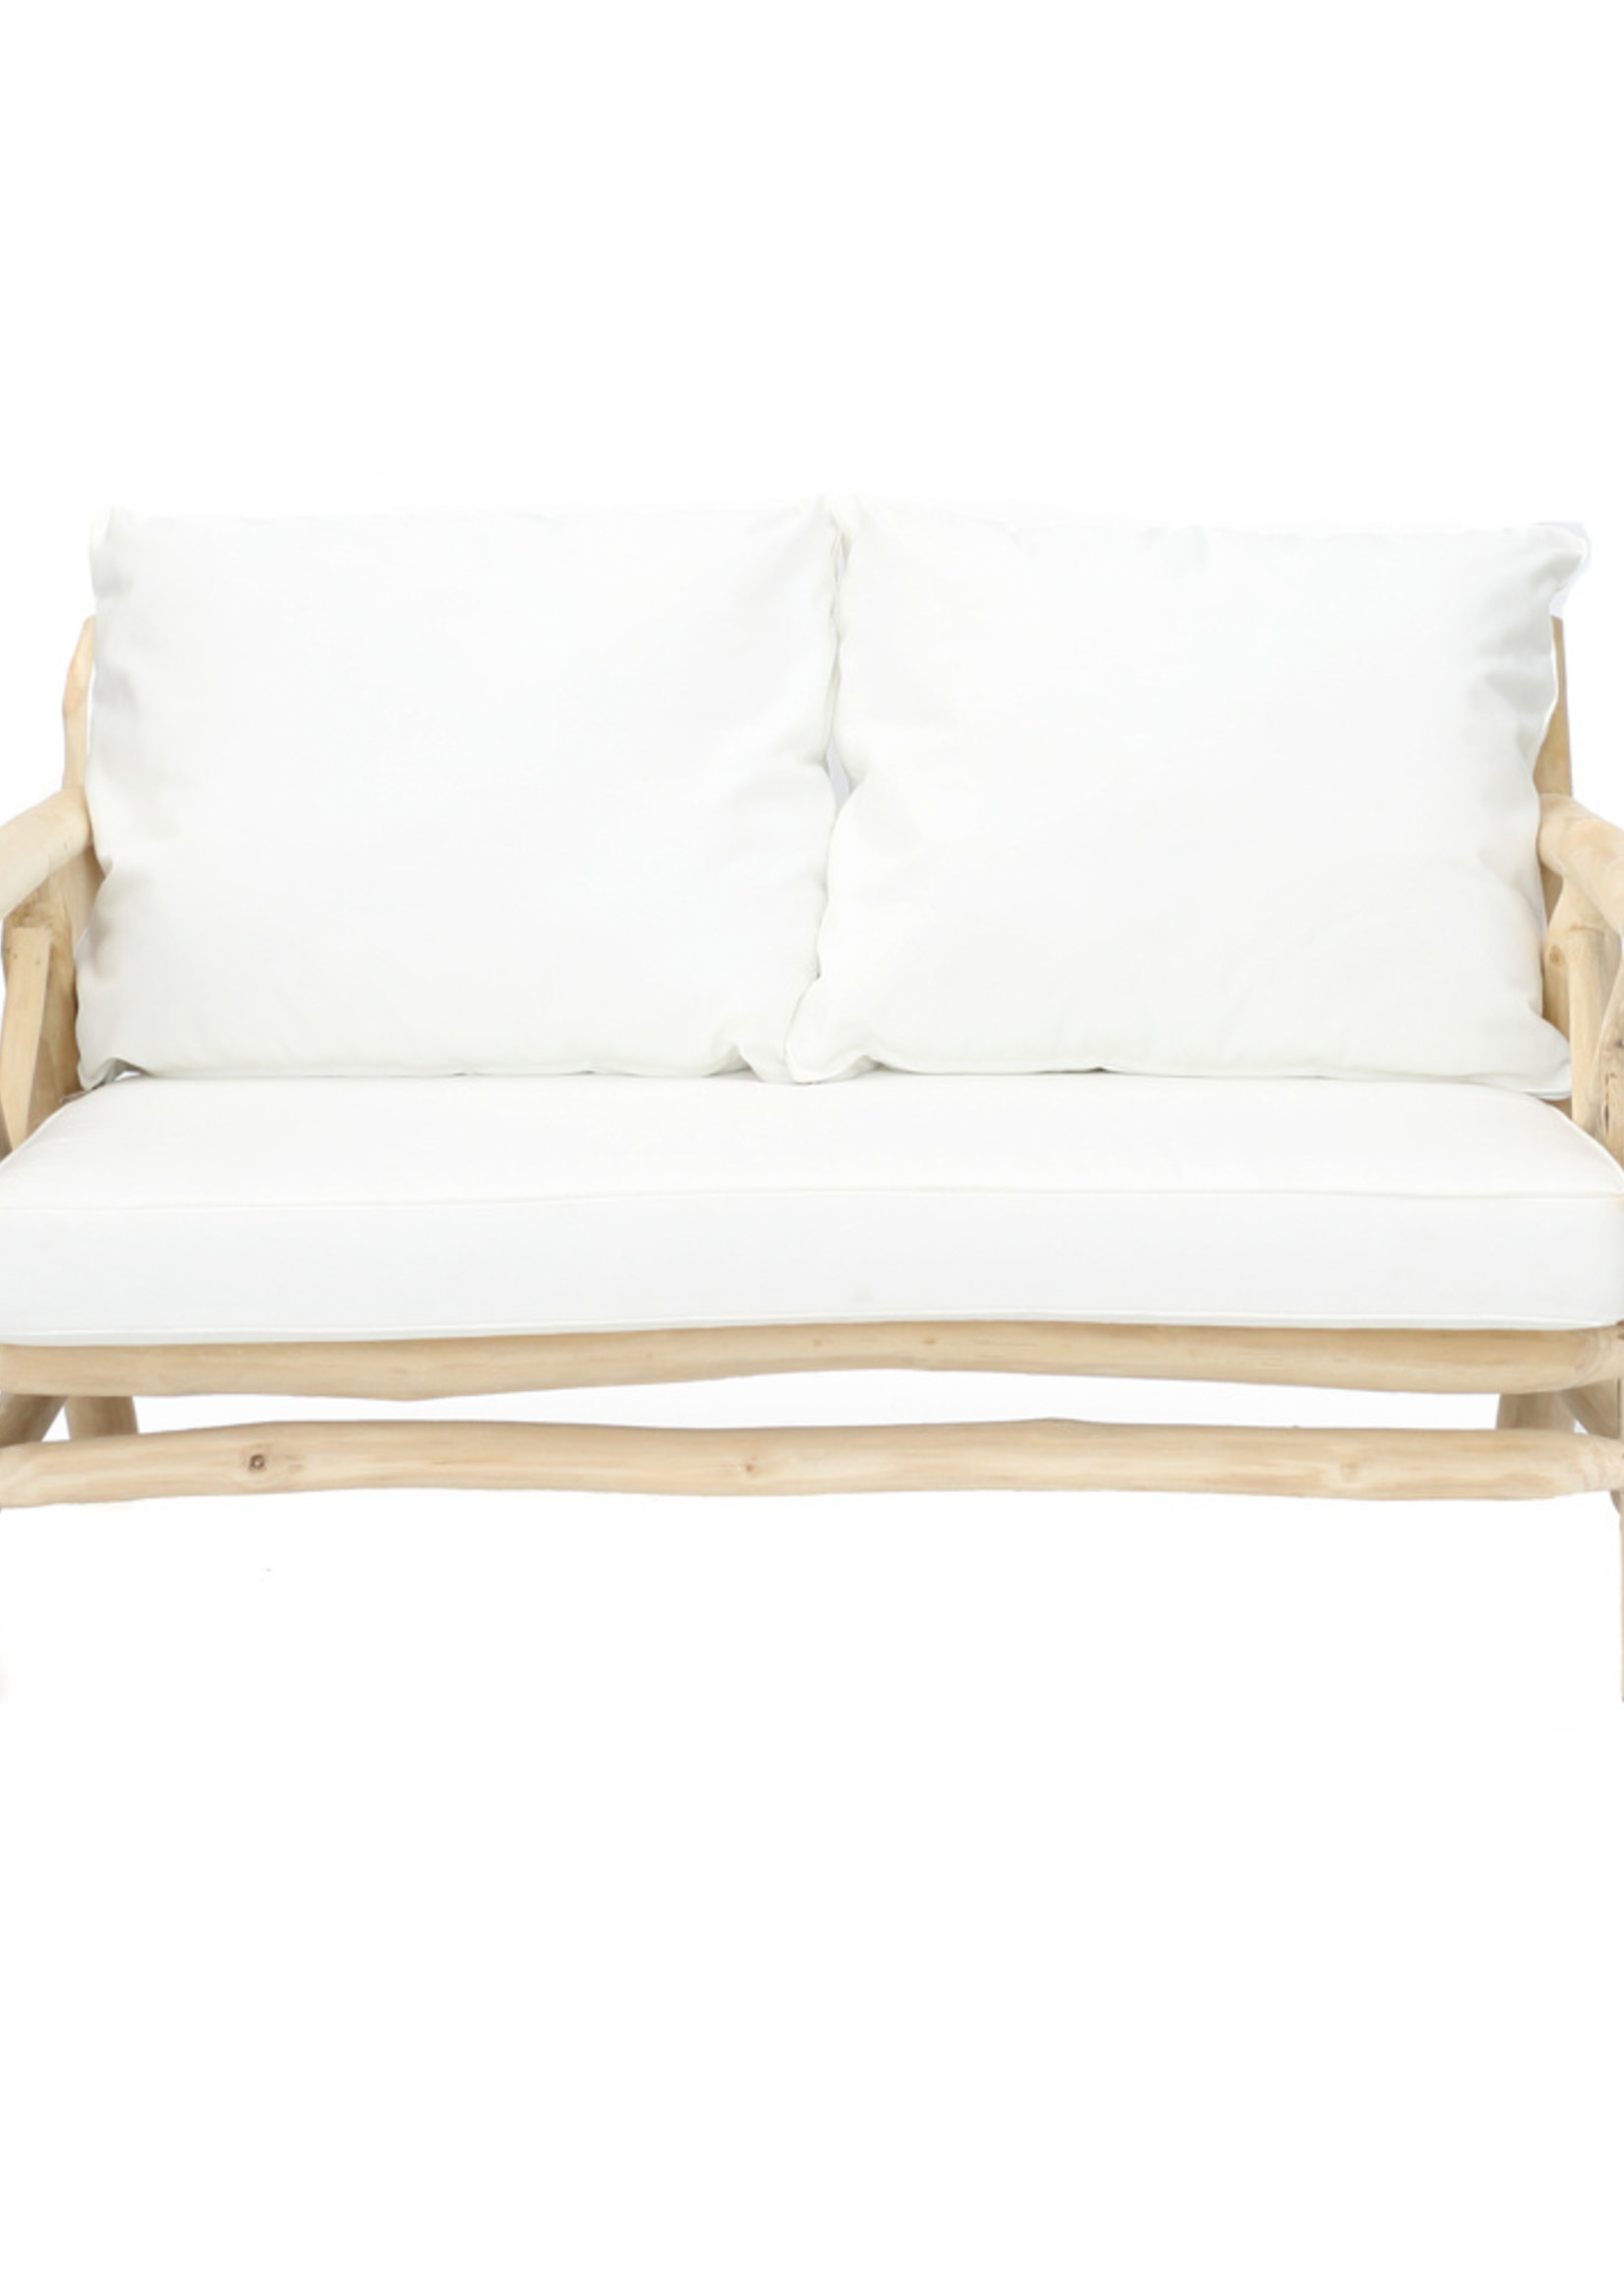 The Tulum Two Seater